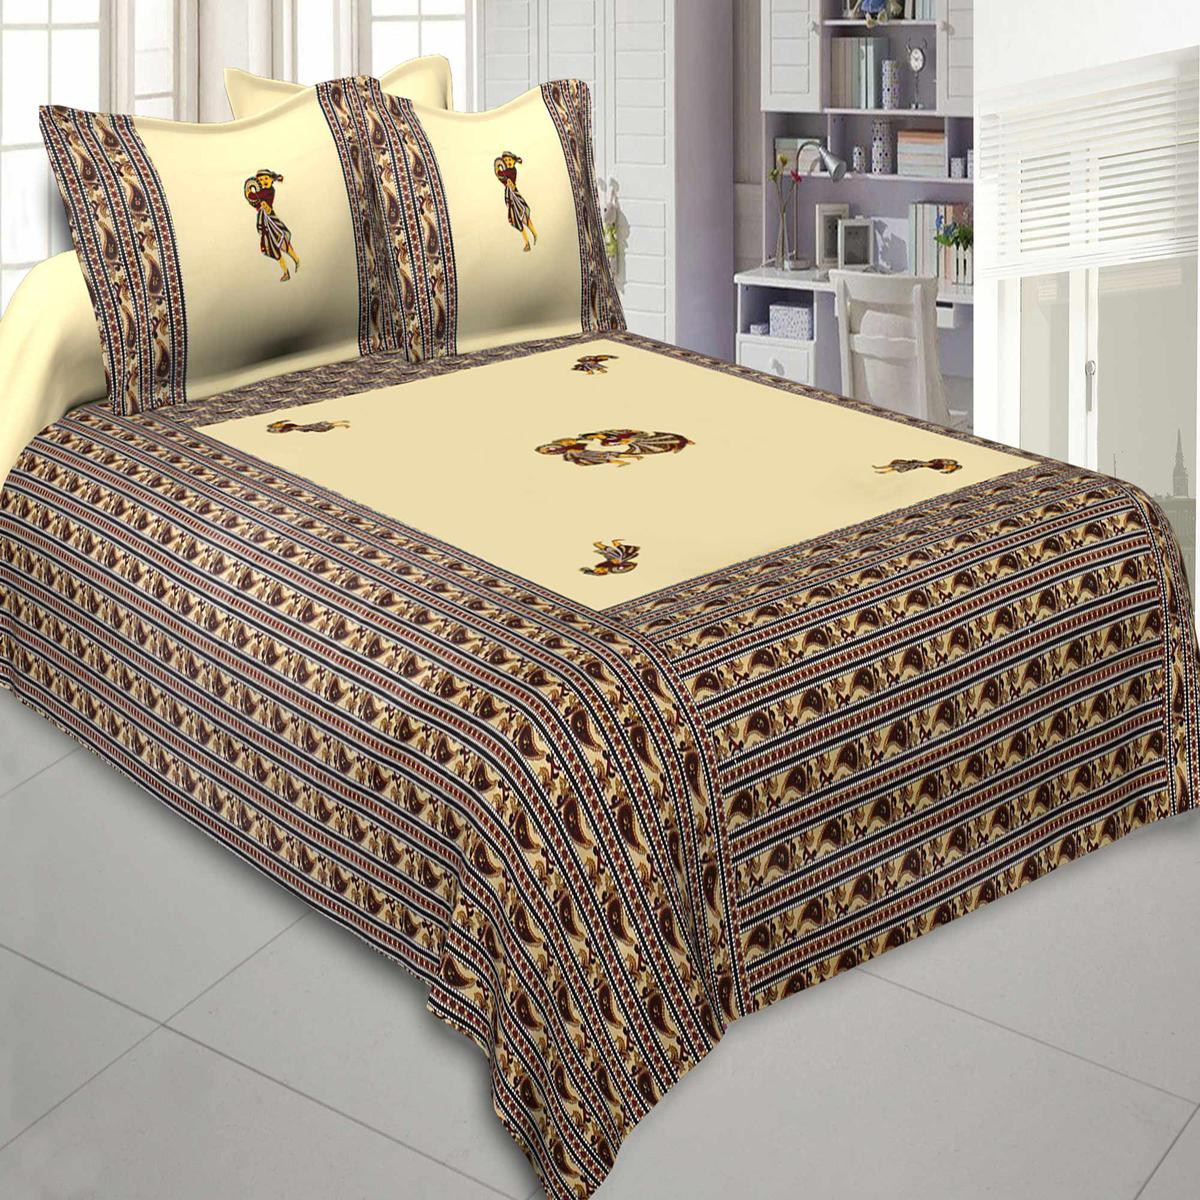 Jaipur Fabric Applique Cream Chang Dance Jaipuri Hand Made Embroidery Patch Work Double Bedsheet With Two Pillow Cover